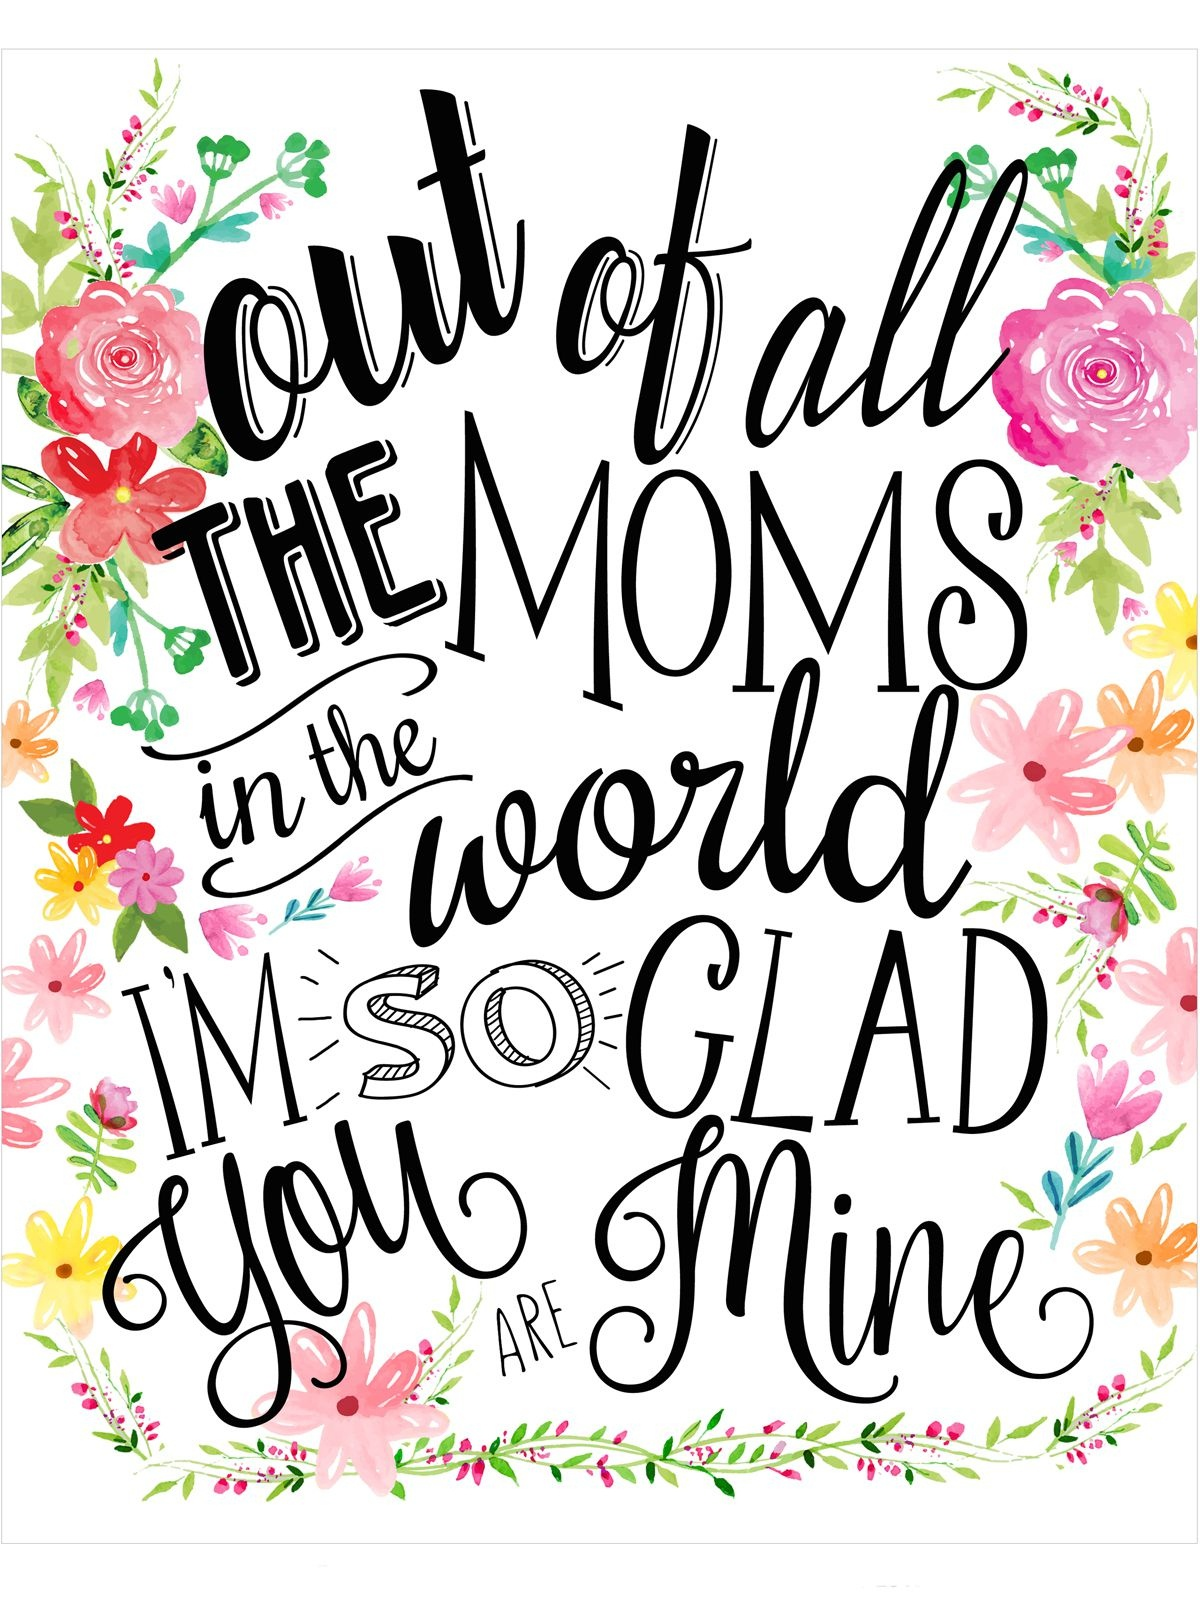 23 Mothers Day Cards - Free Printable Mother's Day Cards - Free Printable Mothers Day Gifts